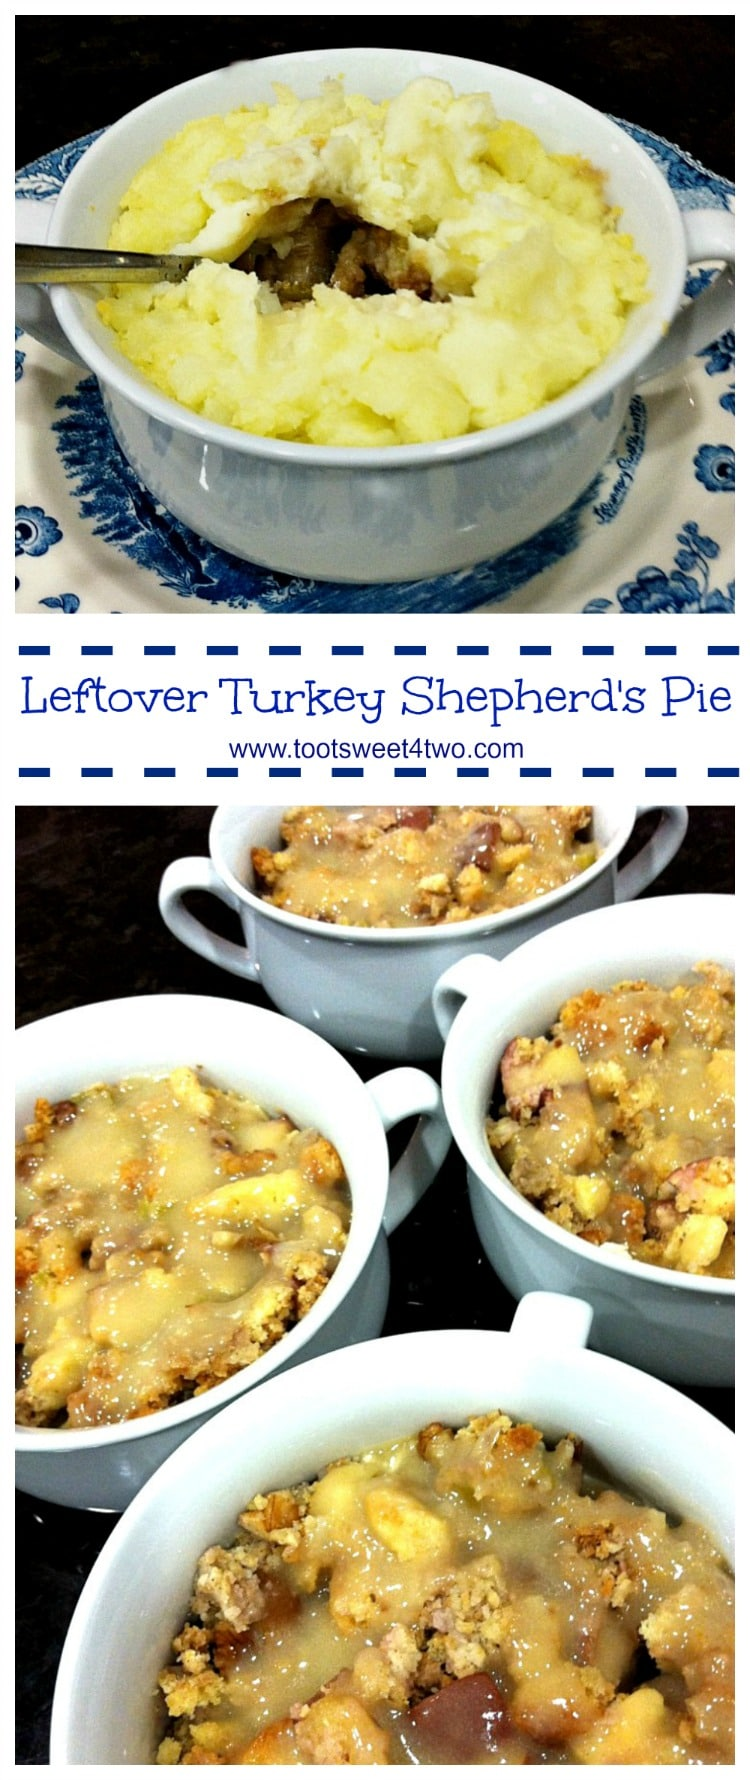 Leftover Turkey Shepherd's Pie - a Thanksgiving leftover classic